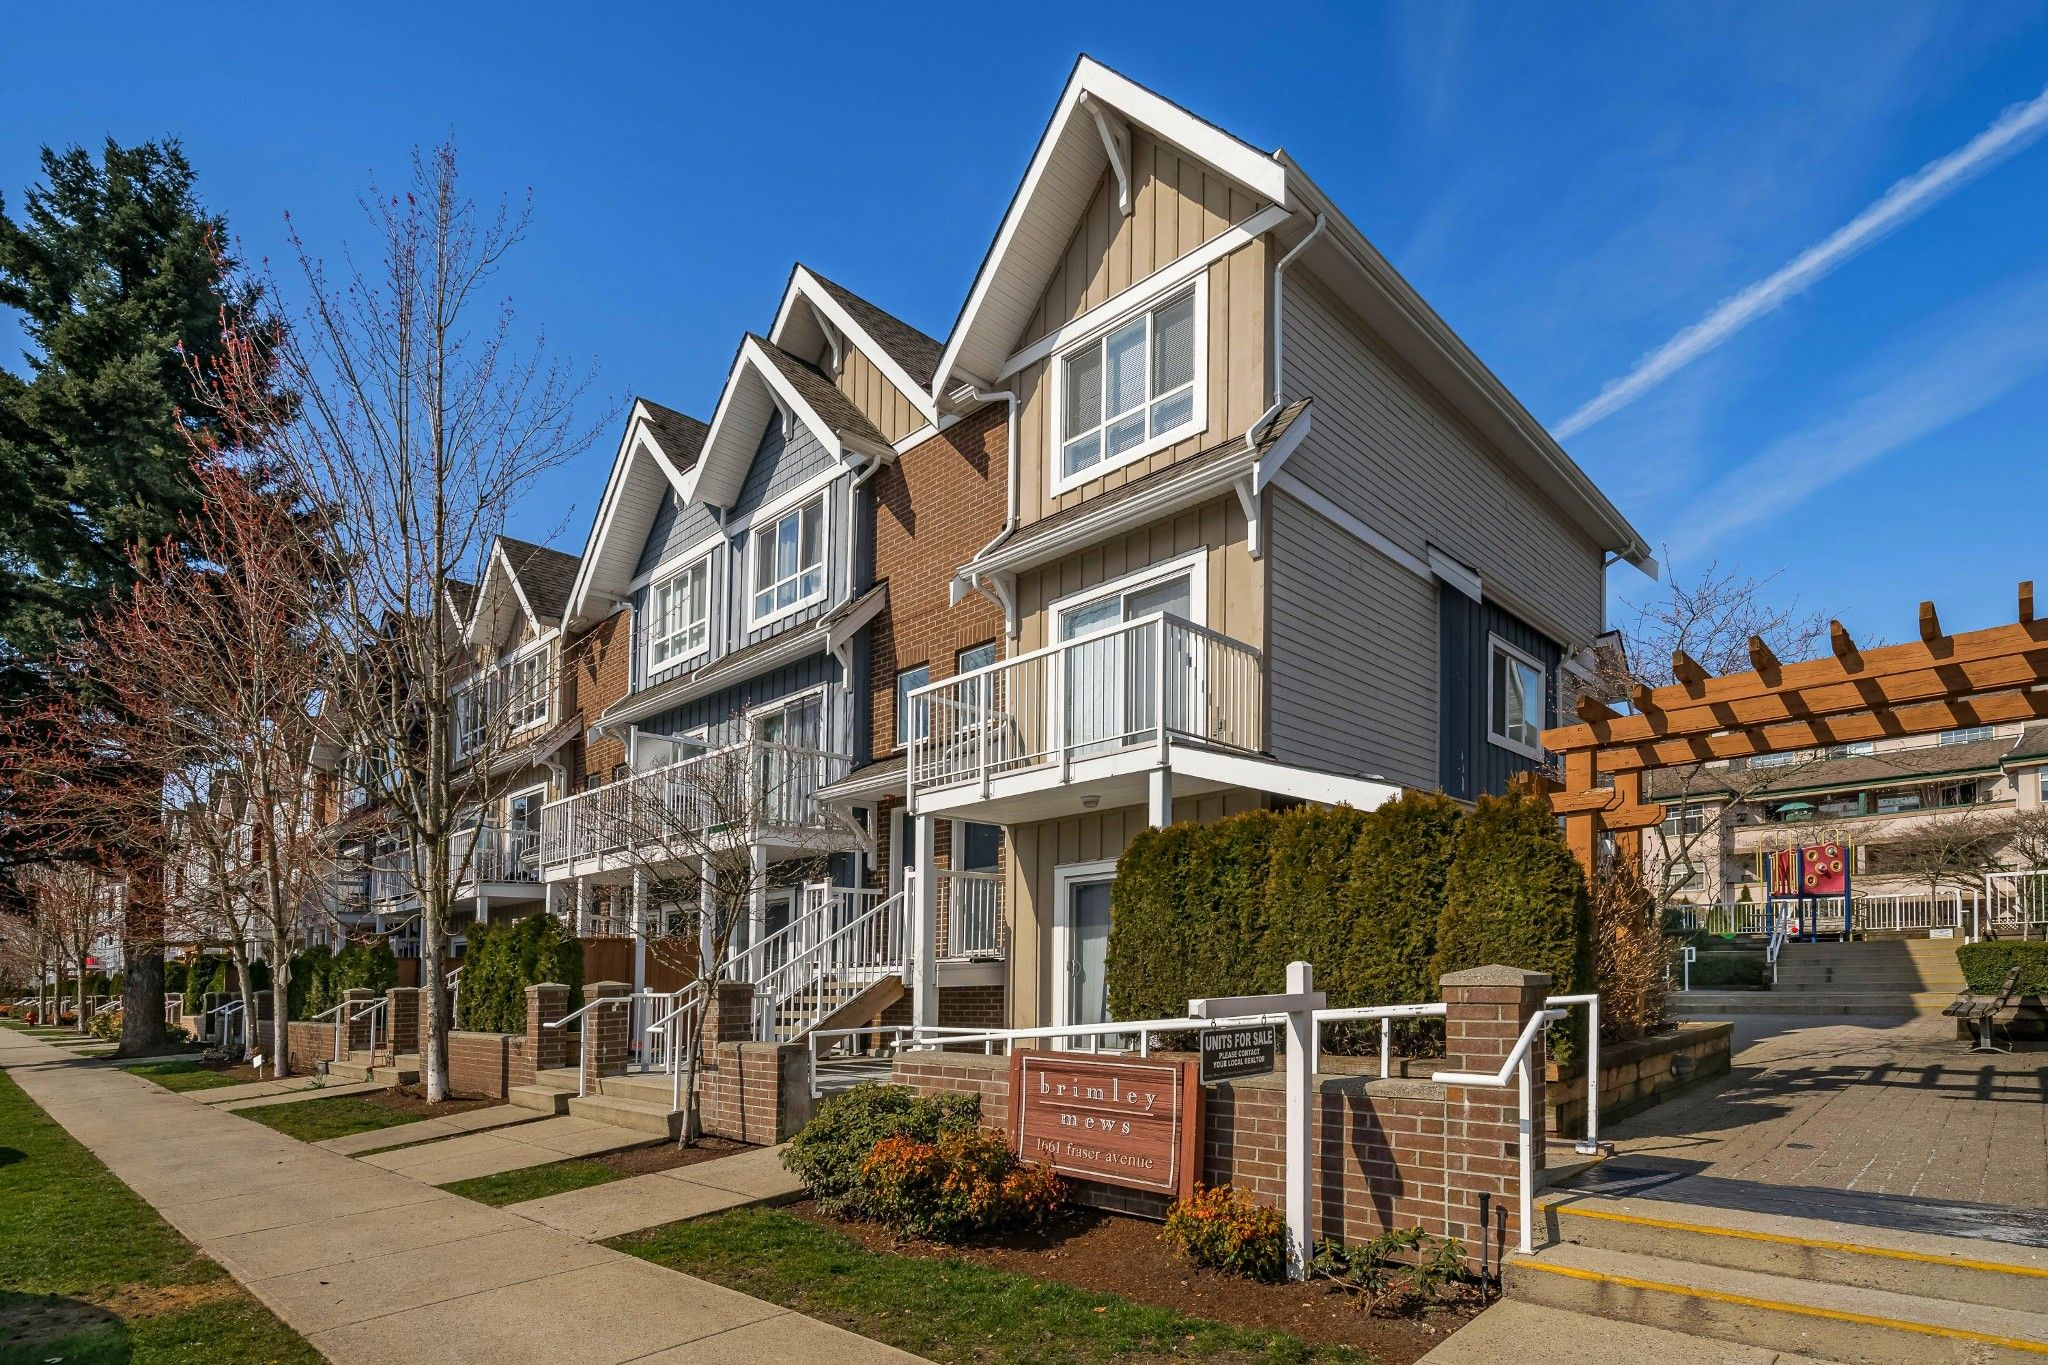 """Main Photo: 506 1661 FRASER Avenue in Port Coquitlam: Glenwood PQ Townhouse for sale in """"Brimley Mews"""" : MLS®# R2446911"""